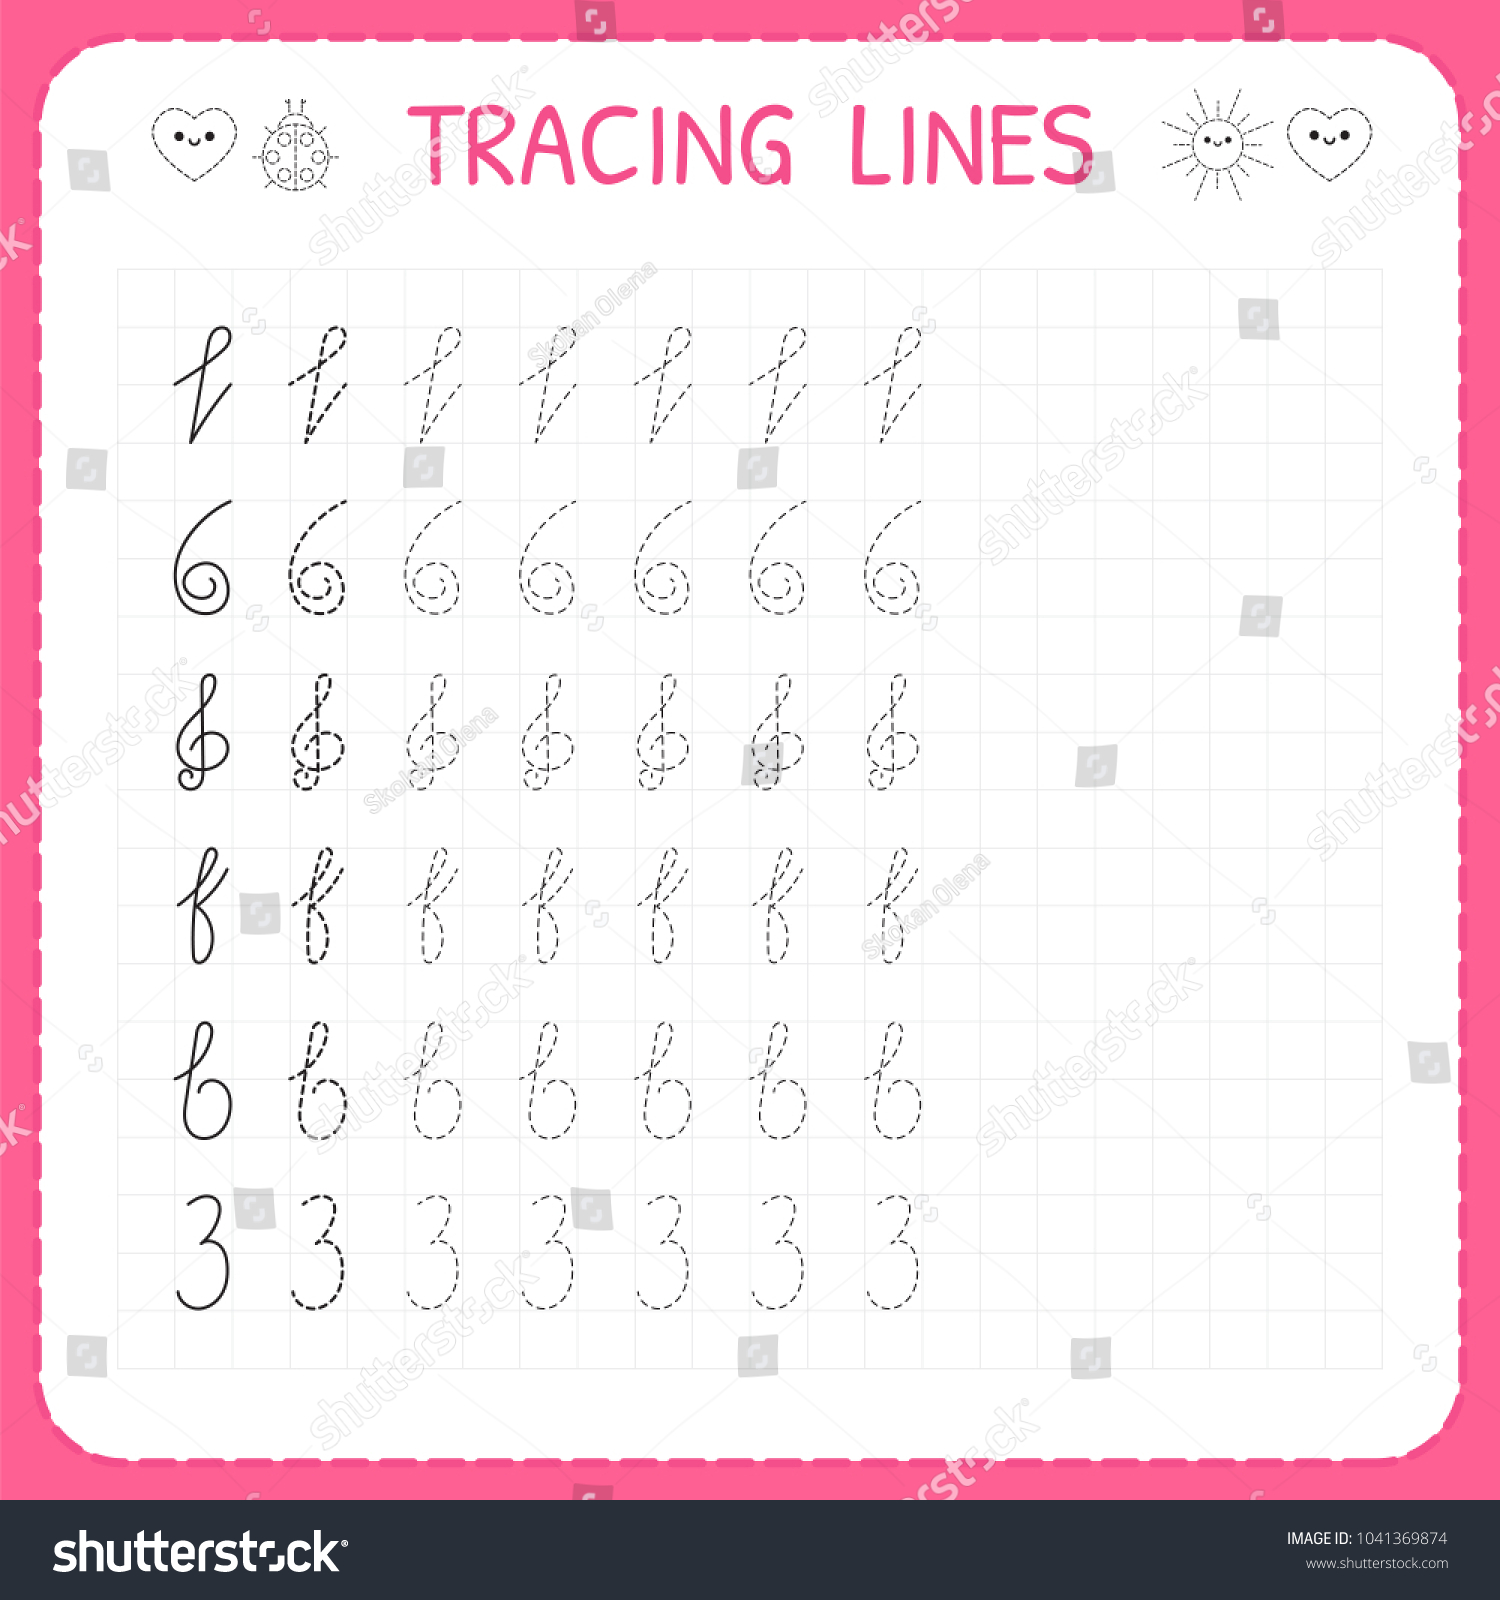 worksheet Vector Worksheets tracing lines worksheet kids trace pattern stock vector 2018 for the basic writing preschool or